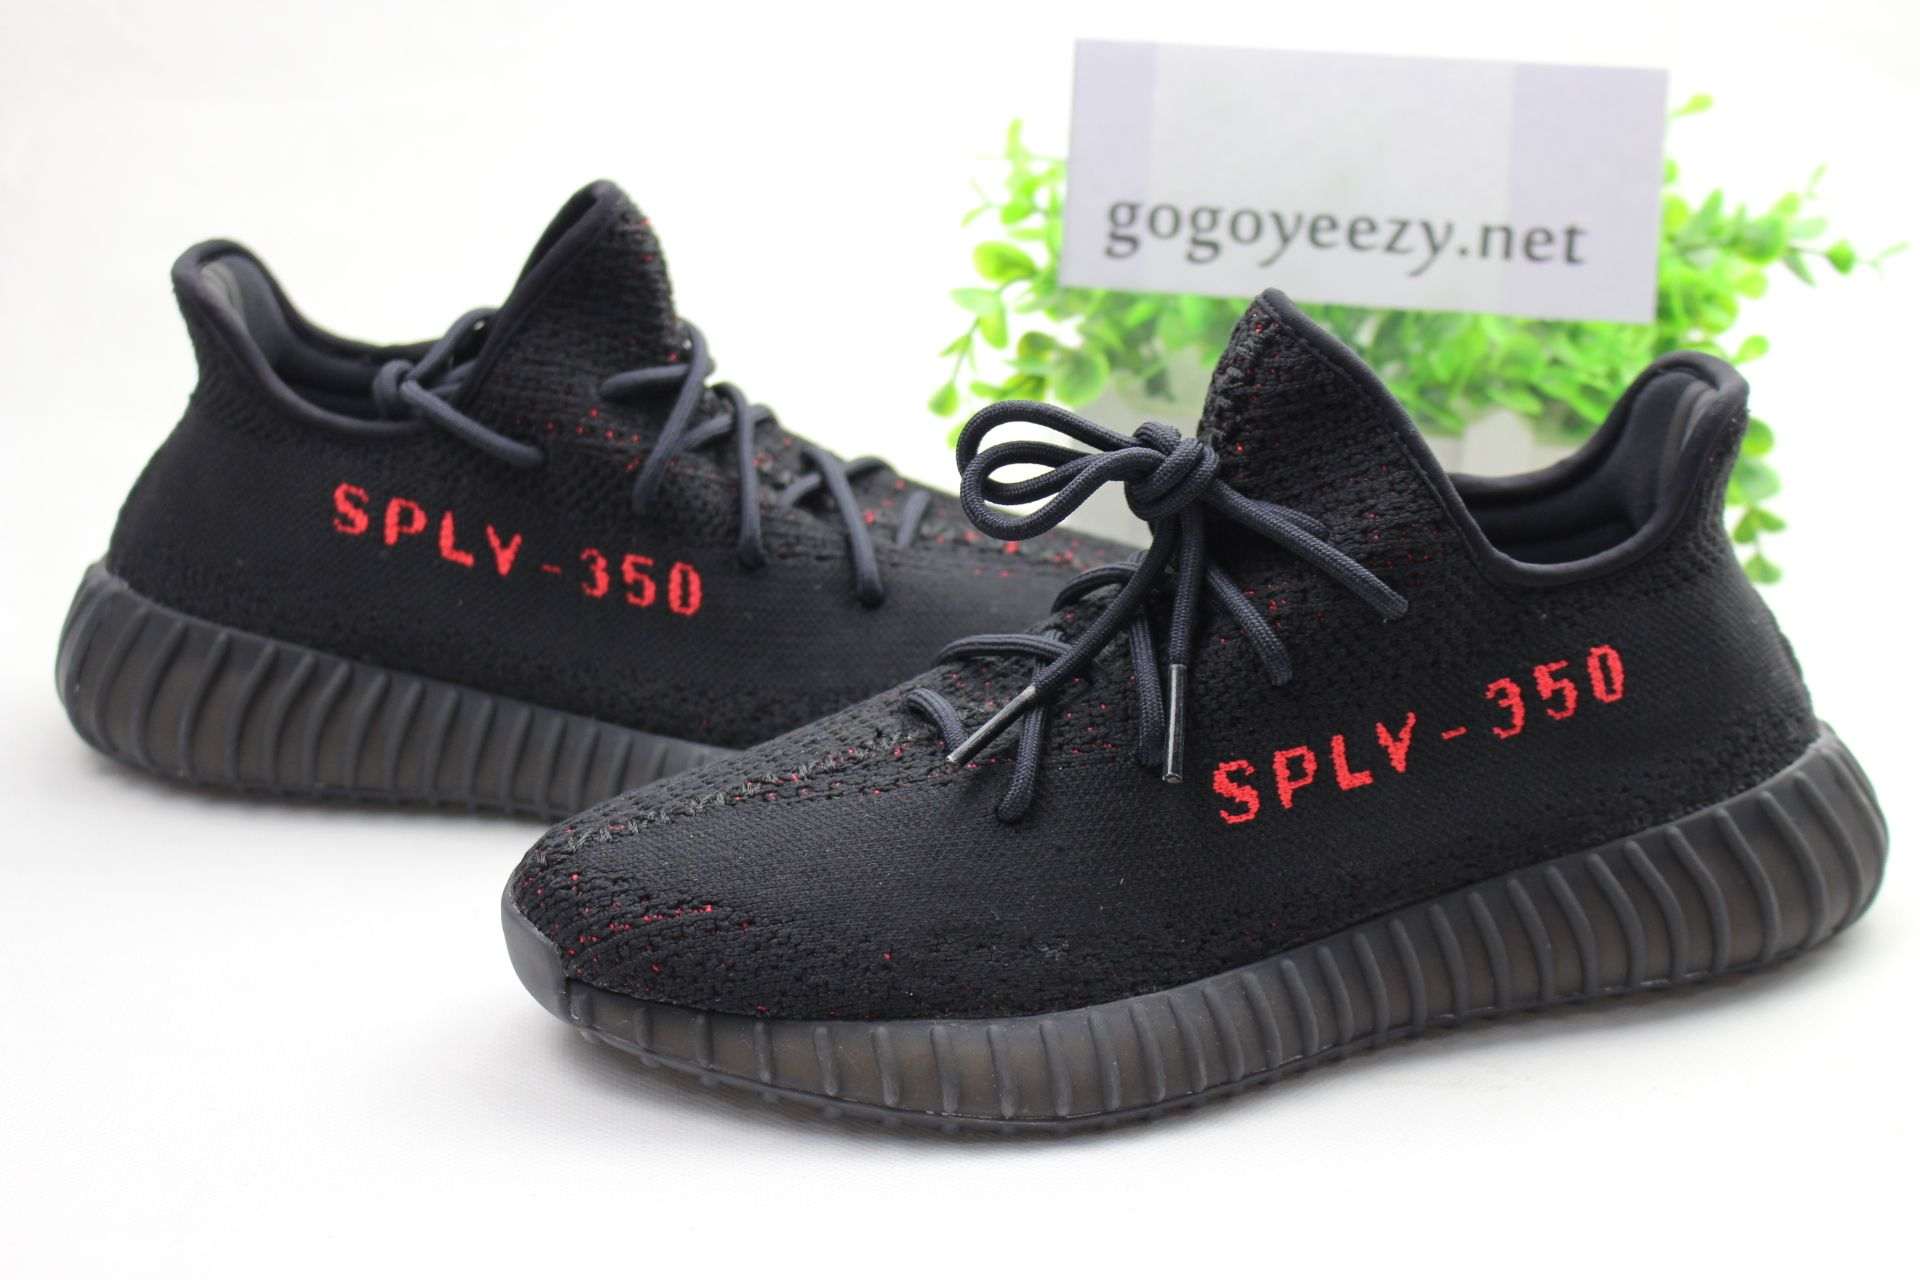 new concept 60aaa a0f42 2017 Newest Update Adidas Yeezy Boost 350 V2 Bred Core Black  Red CP9652